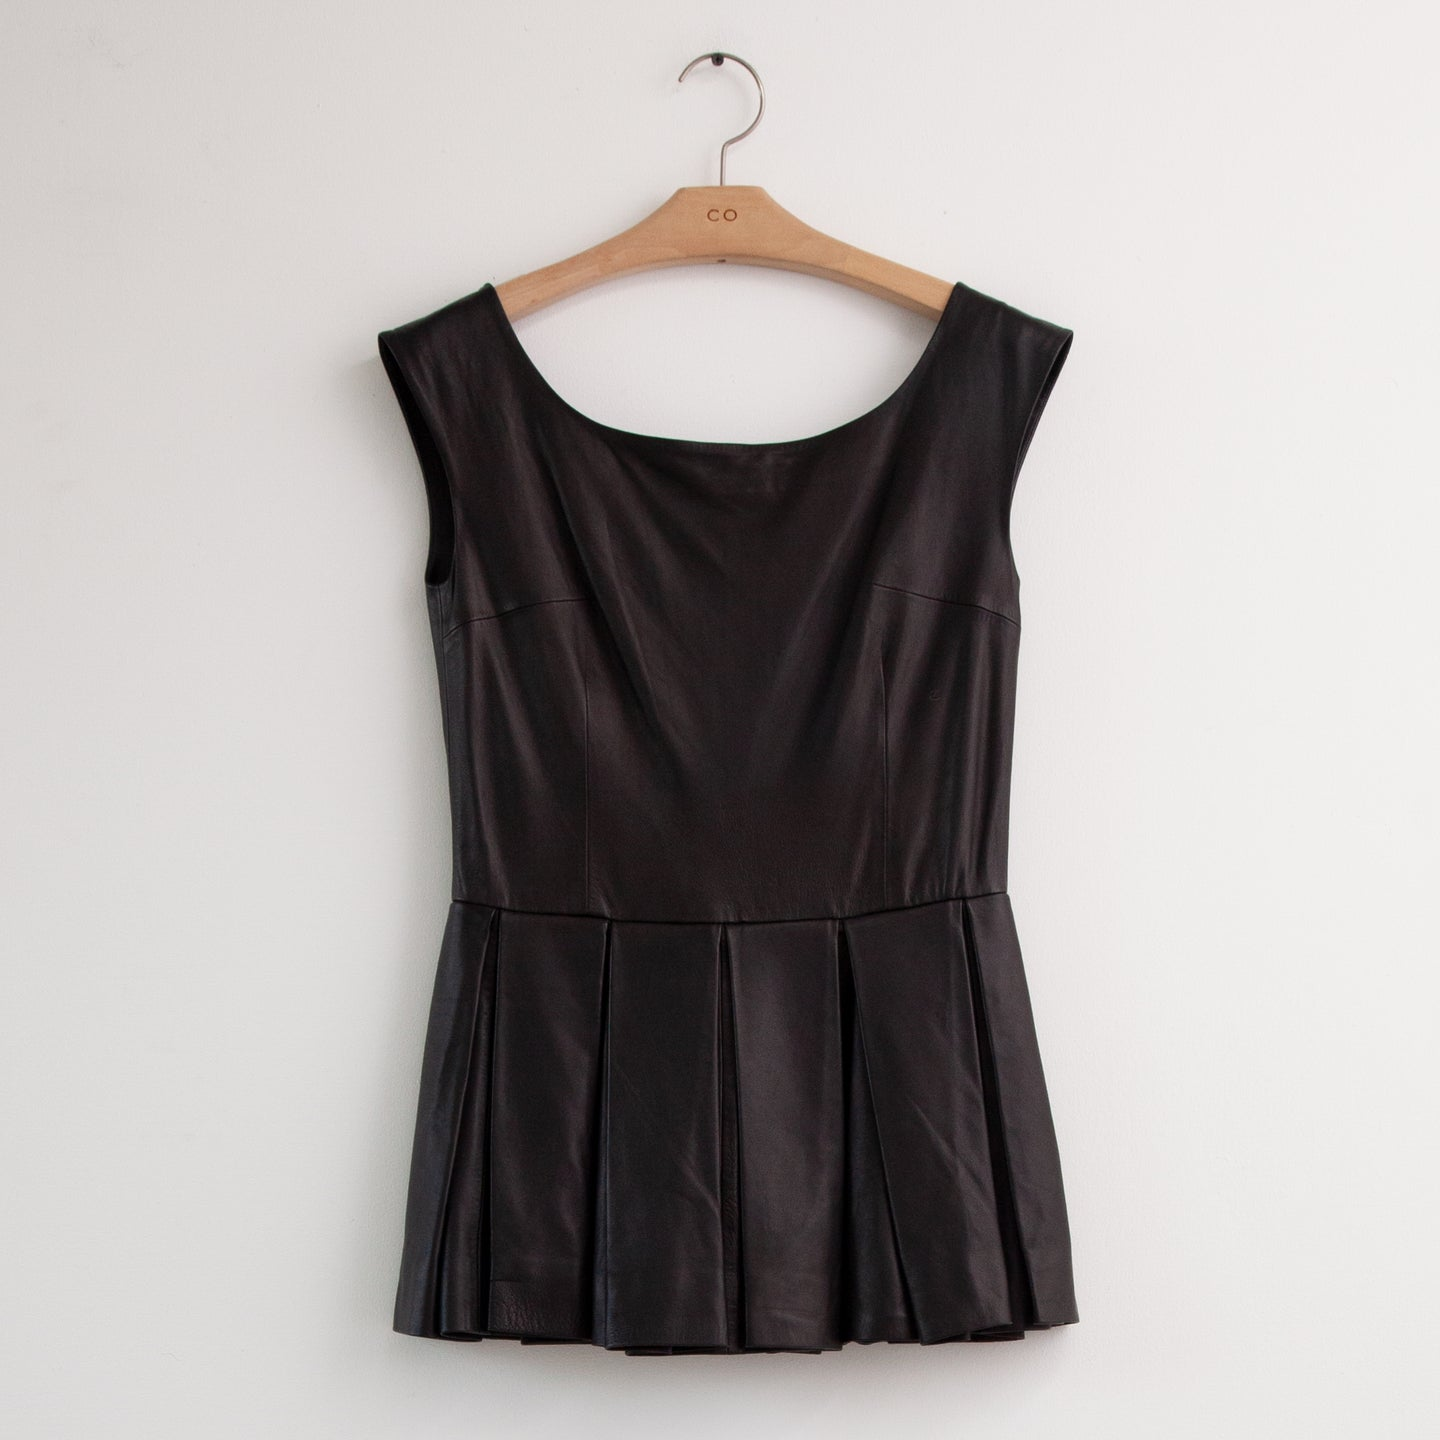 CO - Sleeveless scoop neck top with pleats in black nappa leather